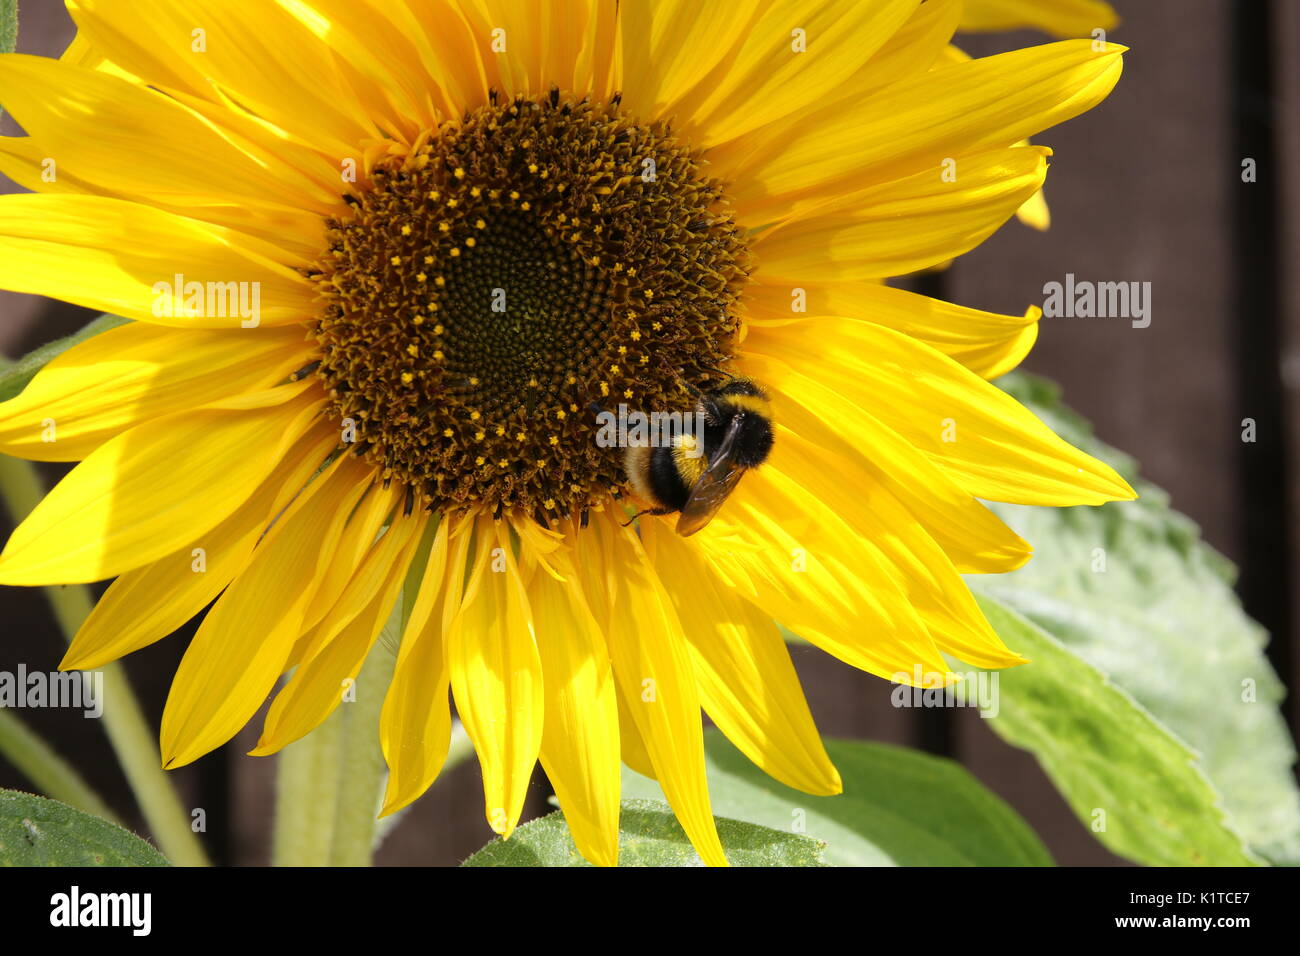 a close up of a blooming sunflower with green leaves and a bee pollinating - Stock Image